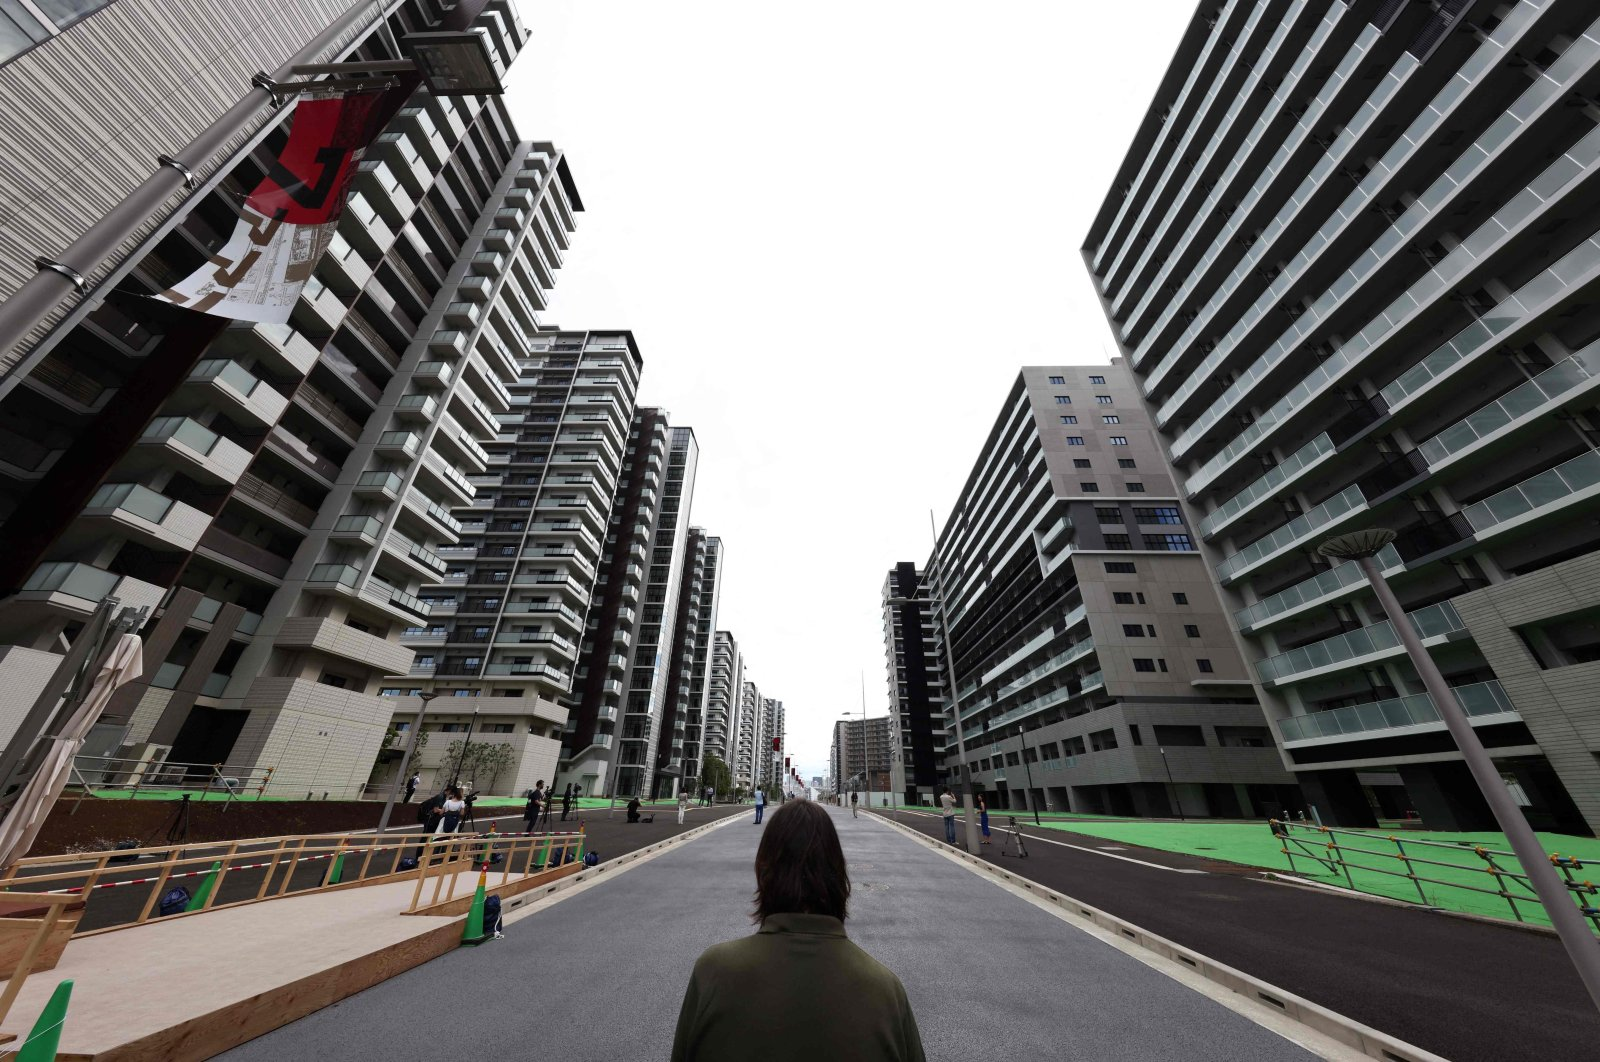 A reporter looks at the buildings that will host the athletes during the 2020 Tokyo Olympic Games, during a media tour of the Olympic Village, Tokyo, Japan, June 20, 2021. (AFP Photo)